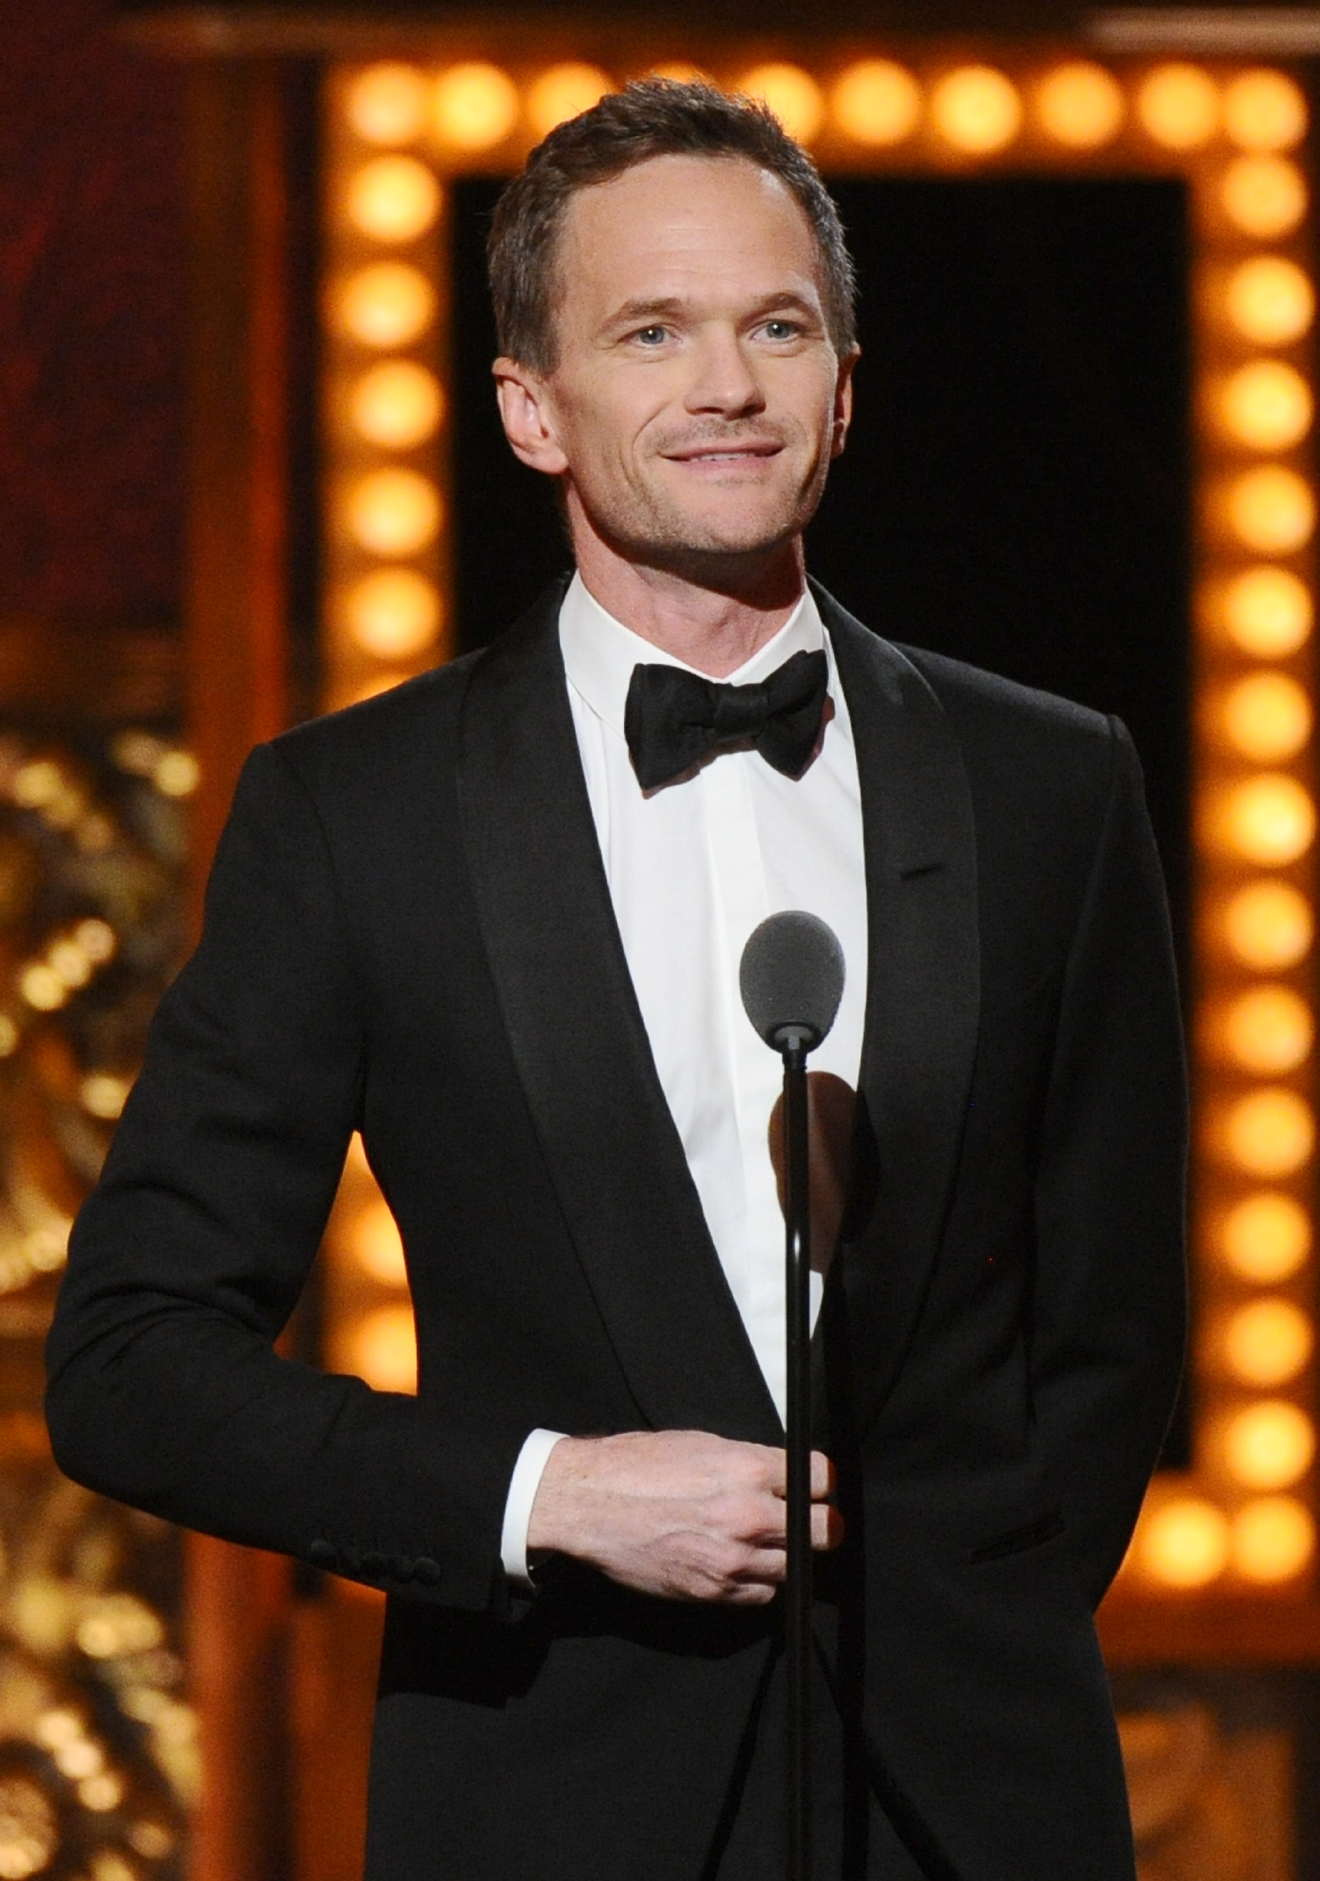 FILE - In this June 7, 2015 file photo, Neil Patrick Harris presents an award at the 69th annual Tony Awards in New York. Harris will serve as a presenter for this year's Tony Awards, help Sunday, June 12, at the Beacon Theatre in New York. (Photo by Charles Sykes/Invision/AP, File)